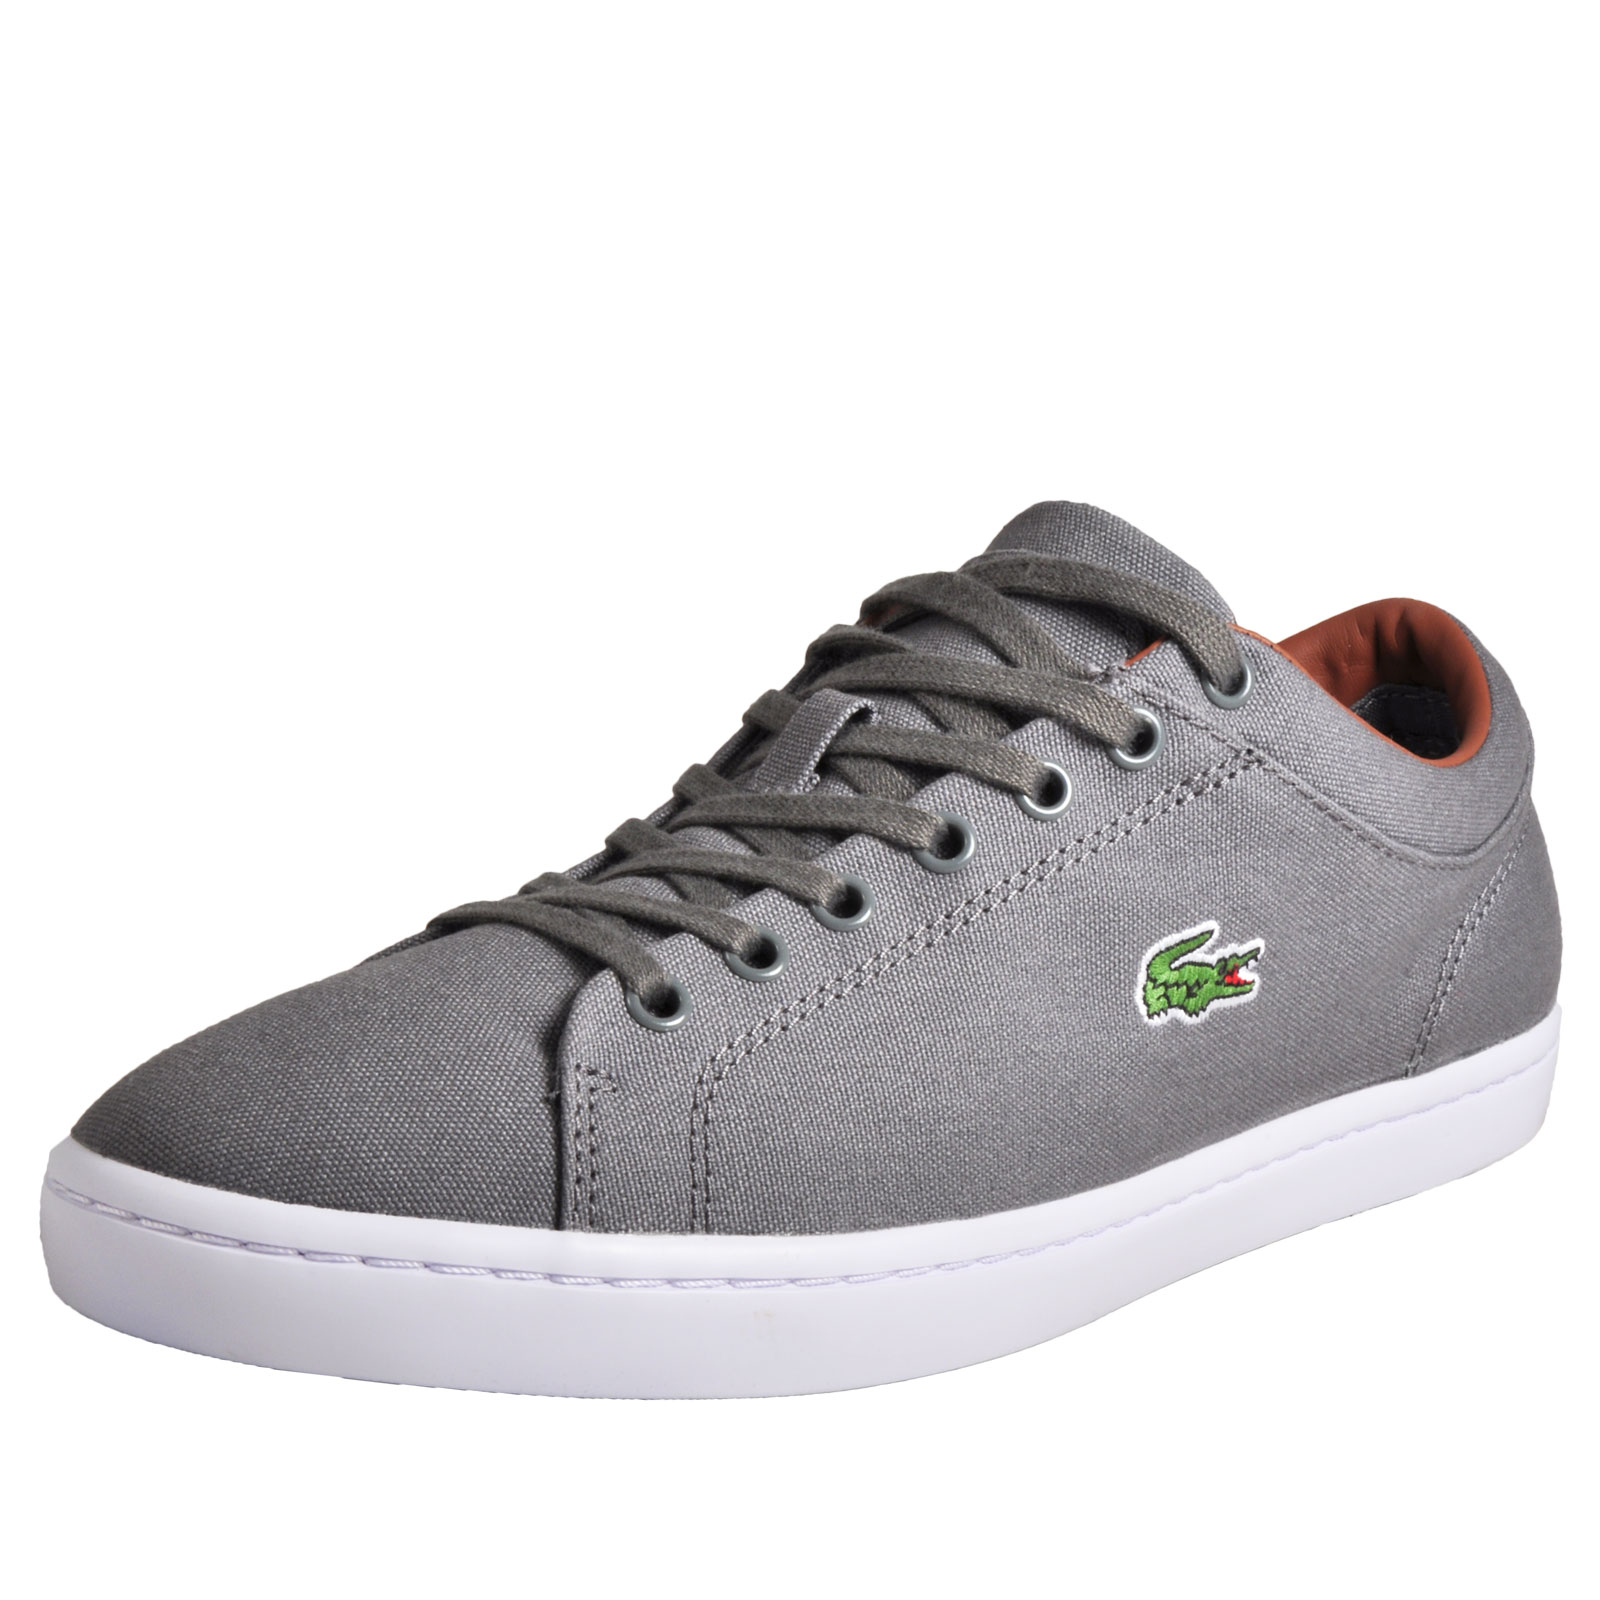 d5496060bf26 Details about Lacoste Straightset Men s Casual Classic Premium Designer  Trainers Grey